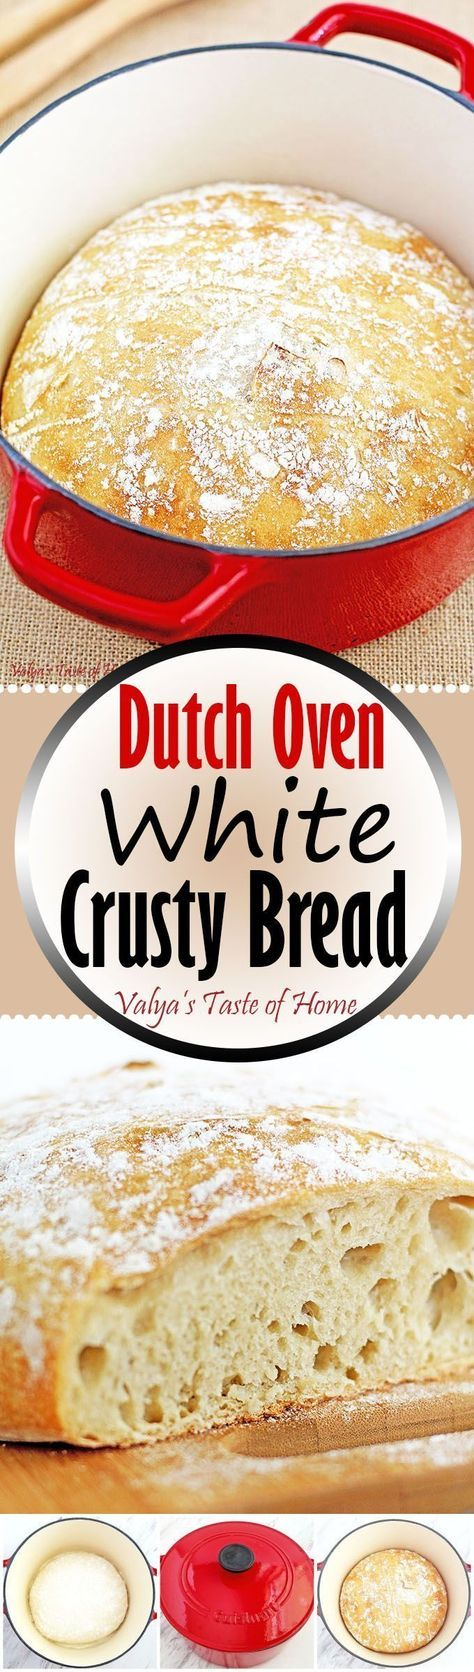 Beautiful and wonderful tasting Dutch Oven White Crusty Bread Recipe! Bread making is a kind of an art, I would say. Making this absolutely delicious and unique bread in cast iron pot is fairly simple. A Dutch oven isn't the first thing that comes to mind